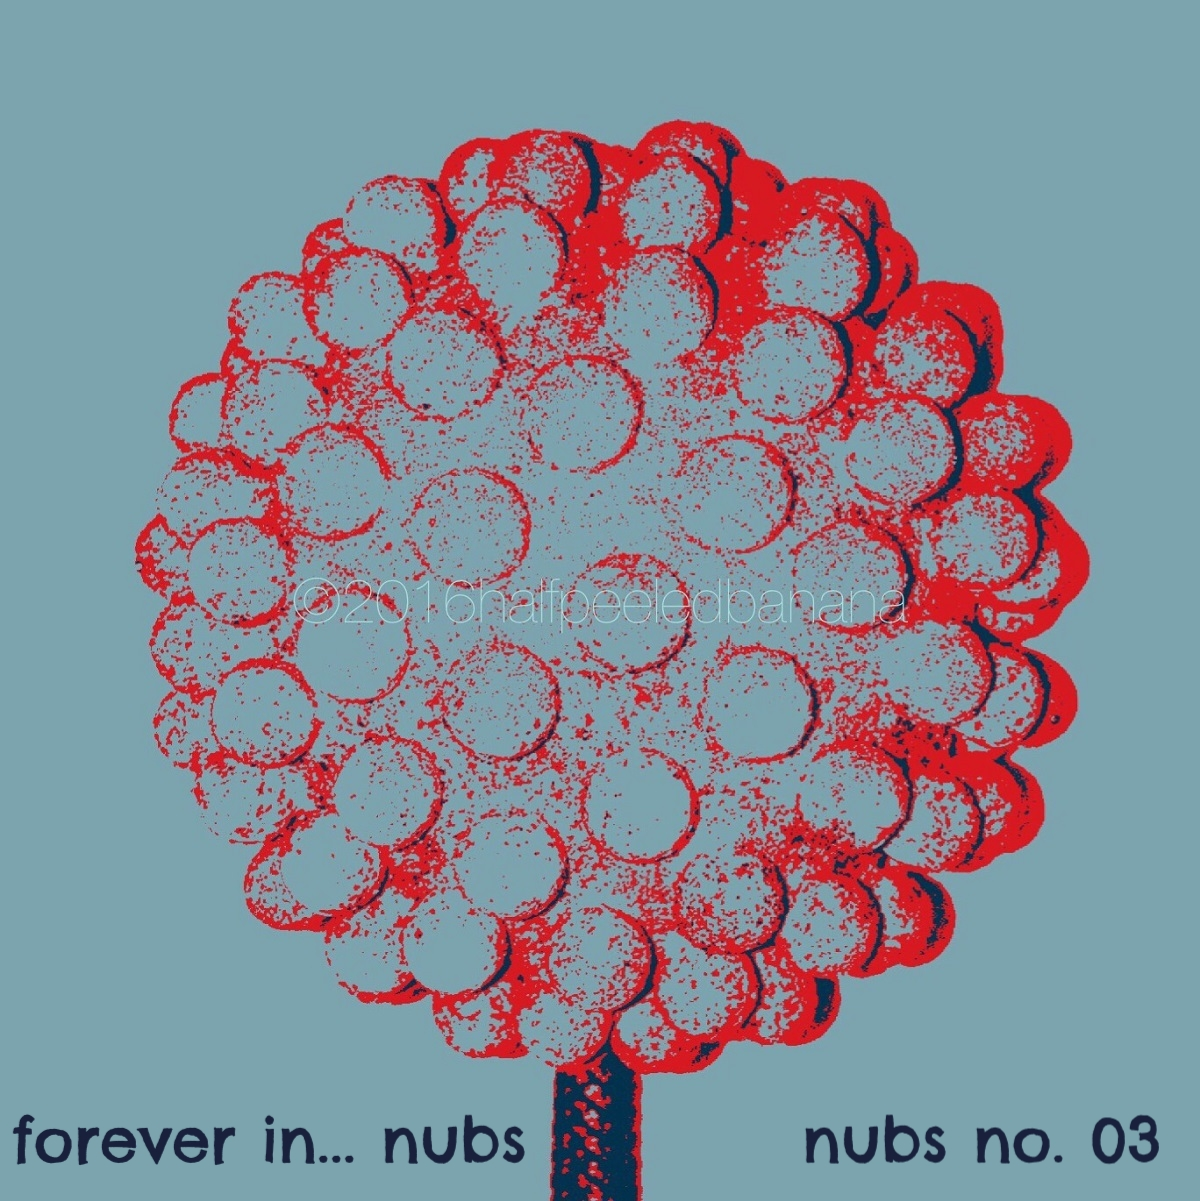 forever in... nubs